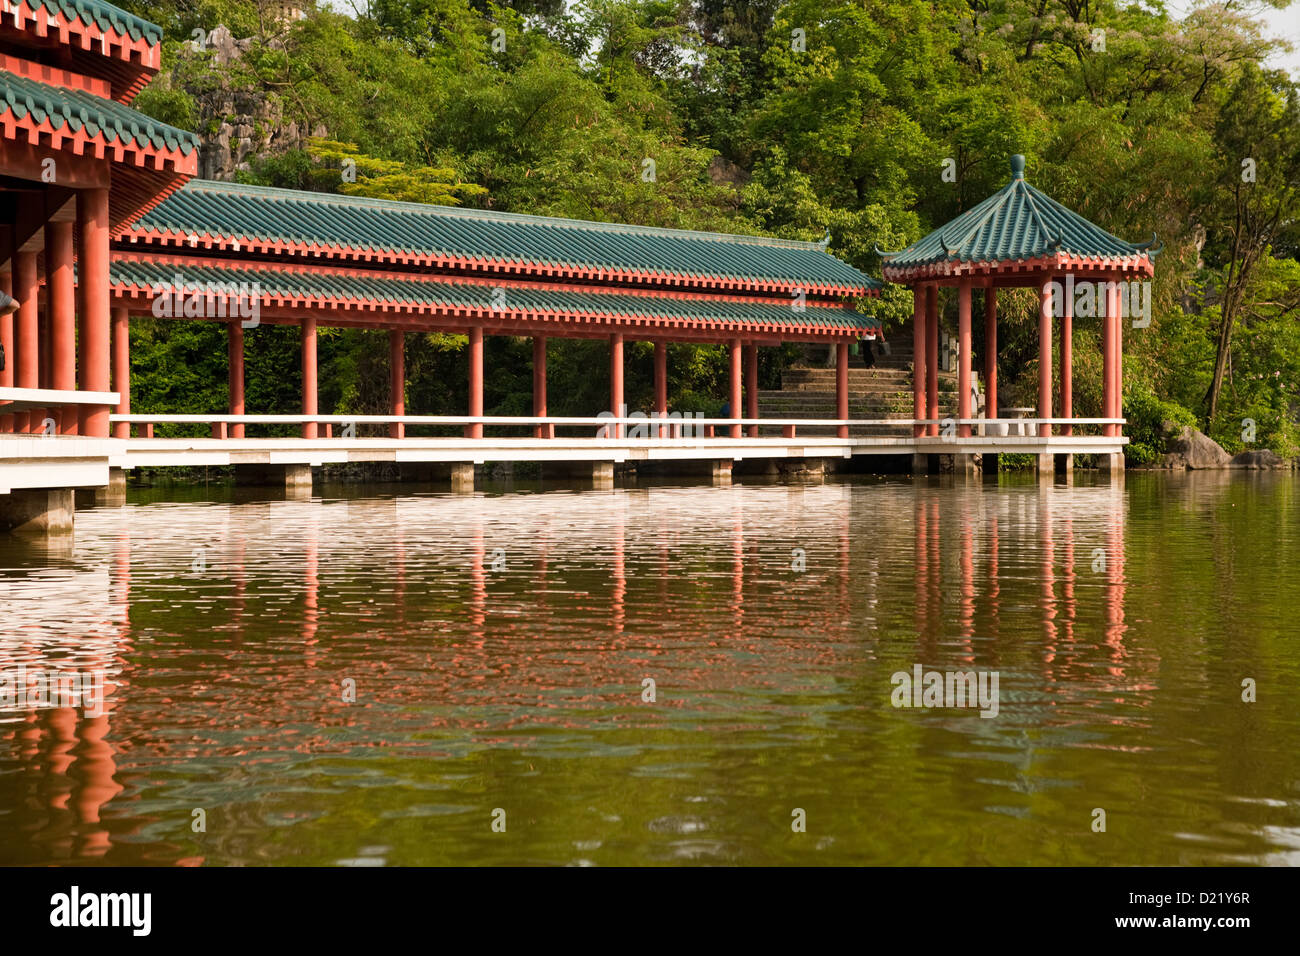 An ancient Chinese style bridge across the lake in Xishan Park in Guilin City in Guangxi Province in Southern China. Stock Photo